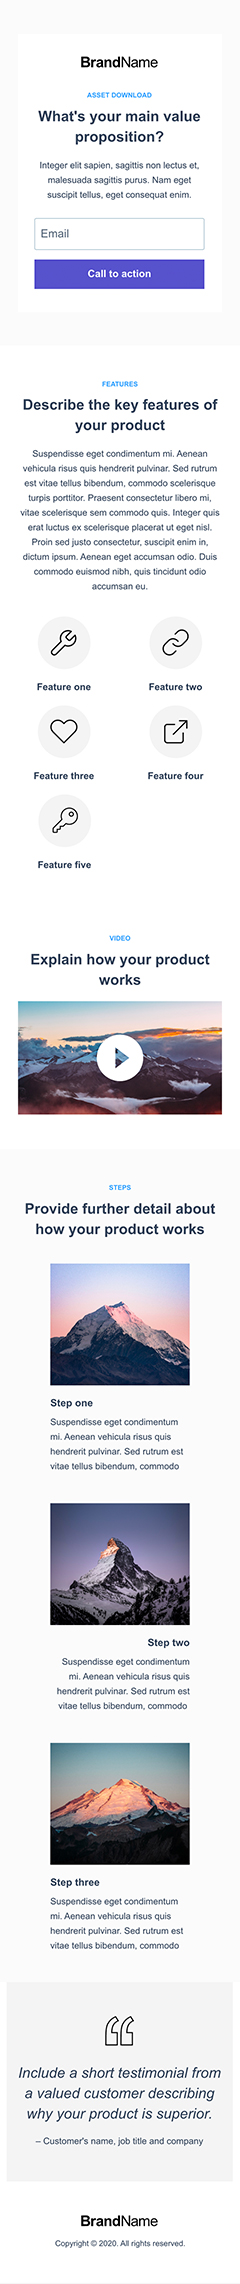 Asset Download Landing Page 3